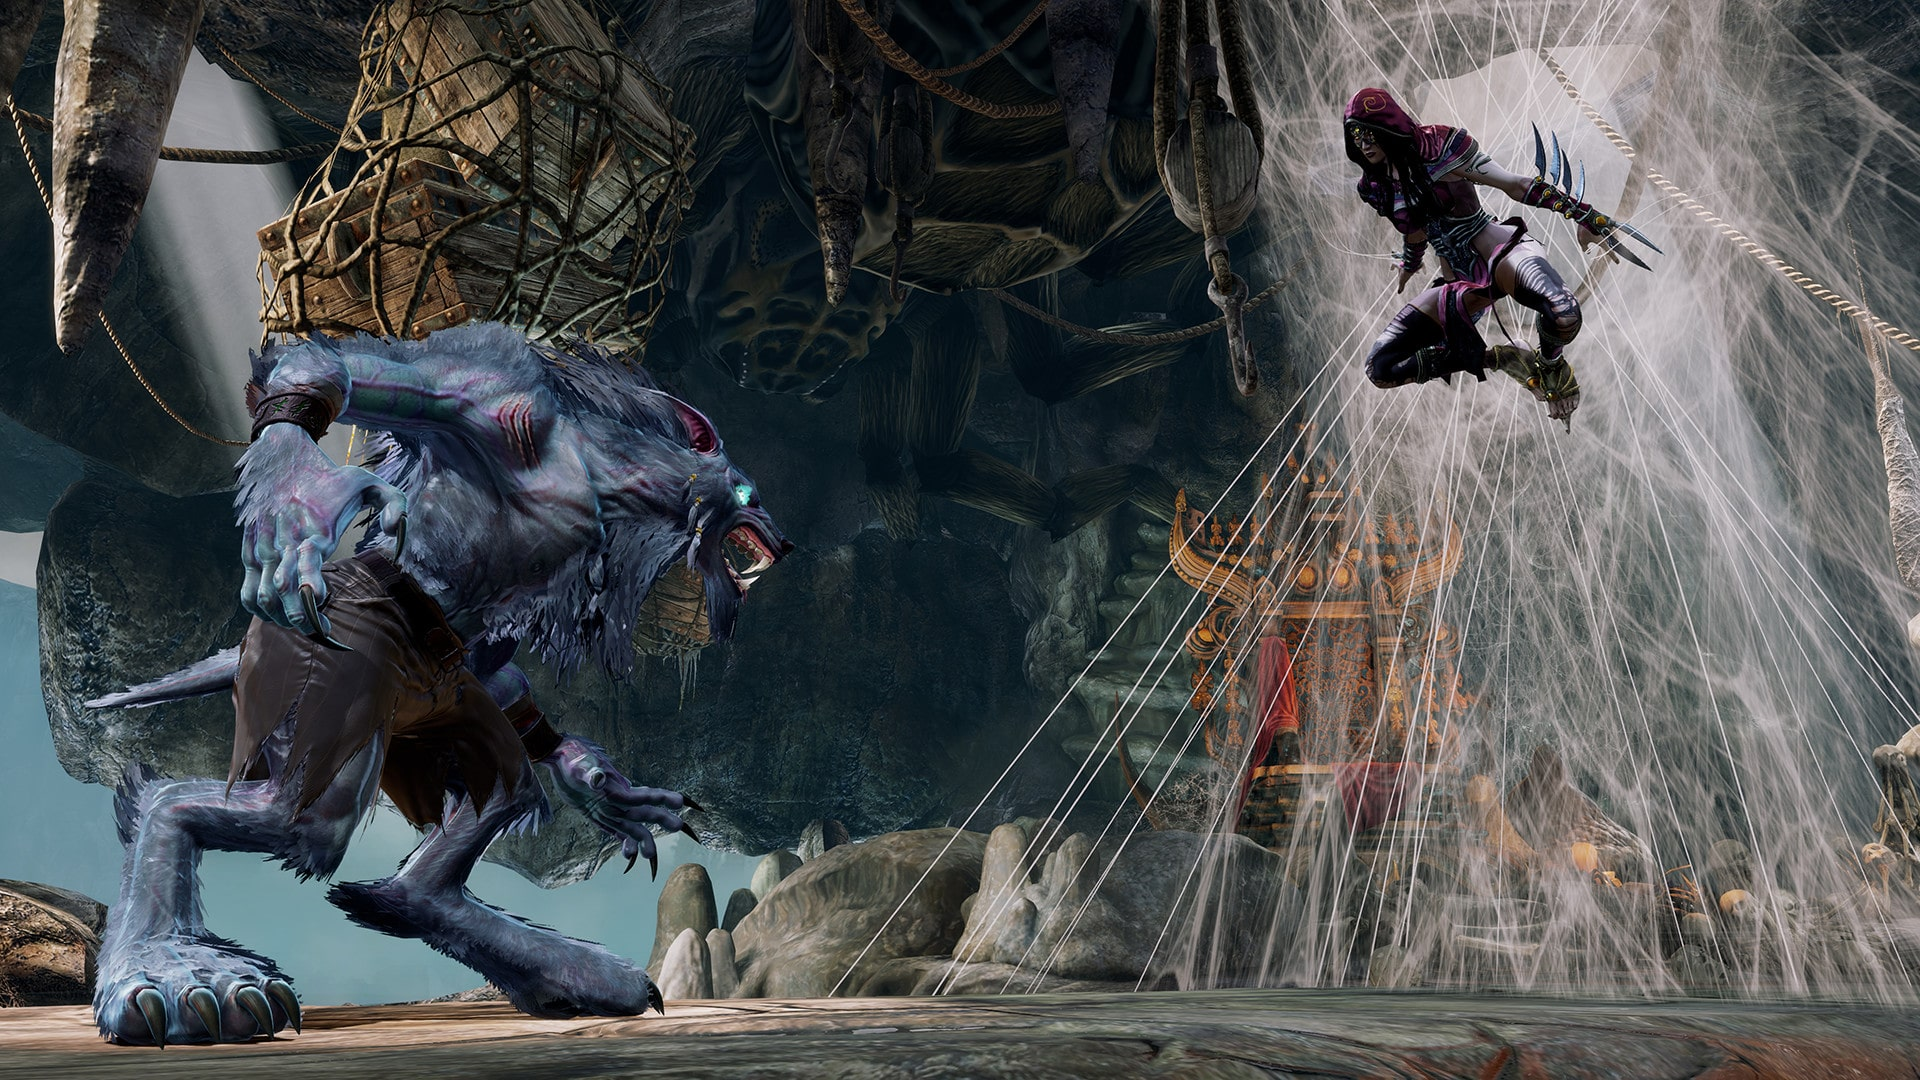 killer instinct free download cracked games org